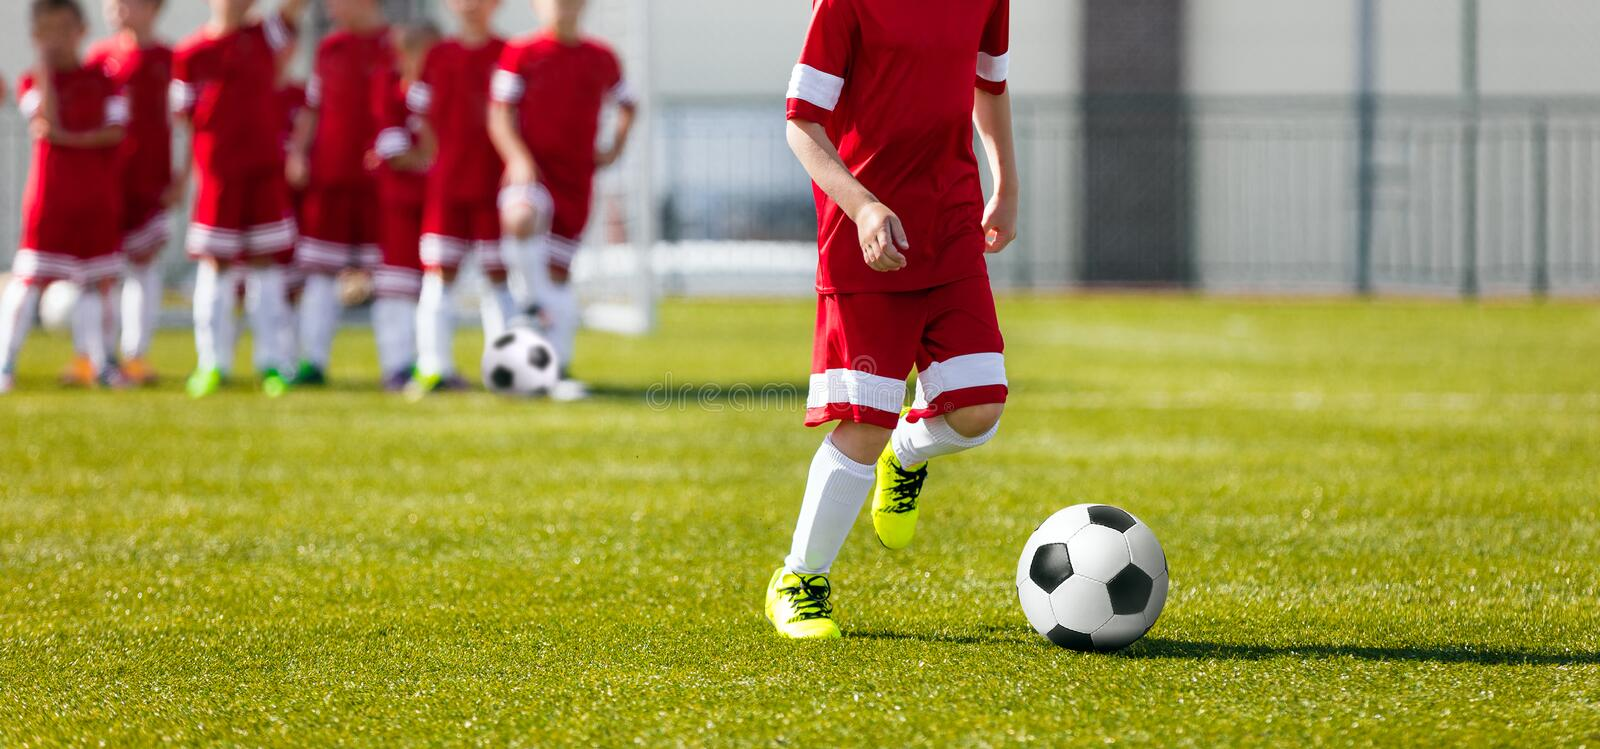 Soccer Football Training for Kids. Youth Soccer Academy Training royalty free stock image